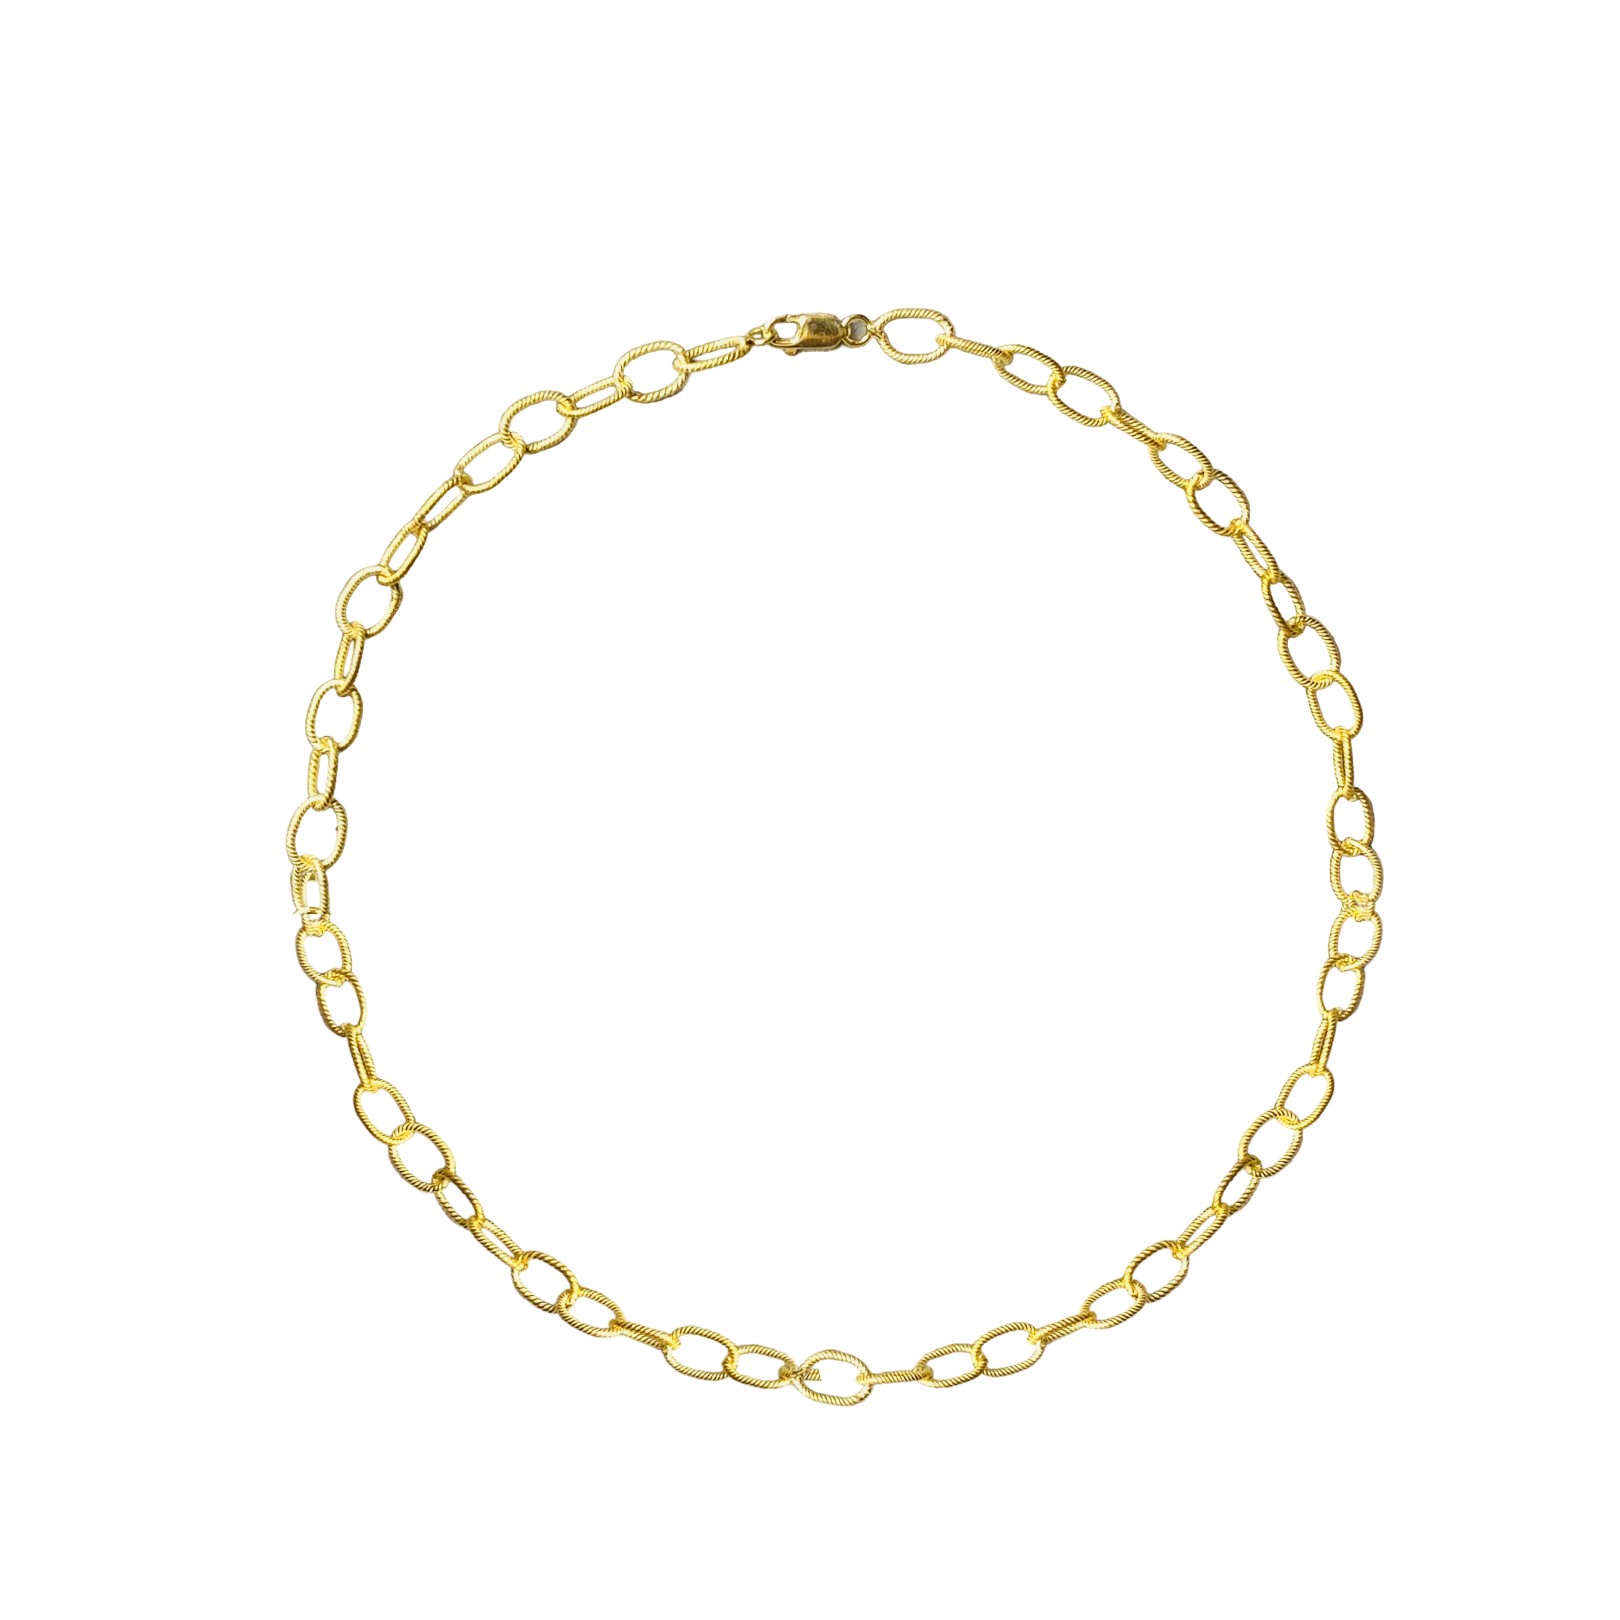 OVAL TEXTURED BOX LINK CHAIN